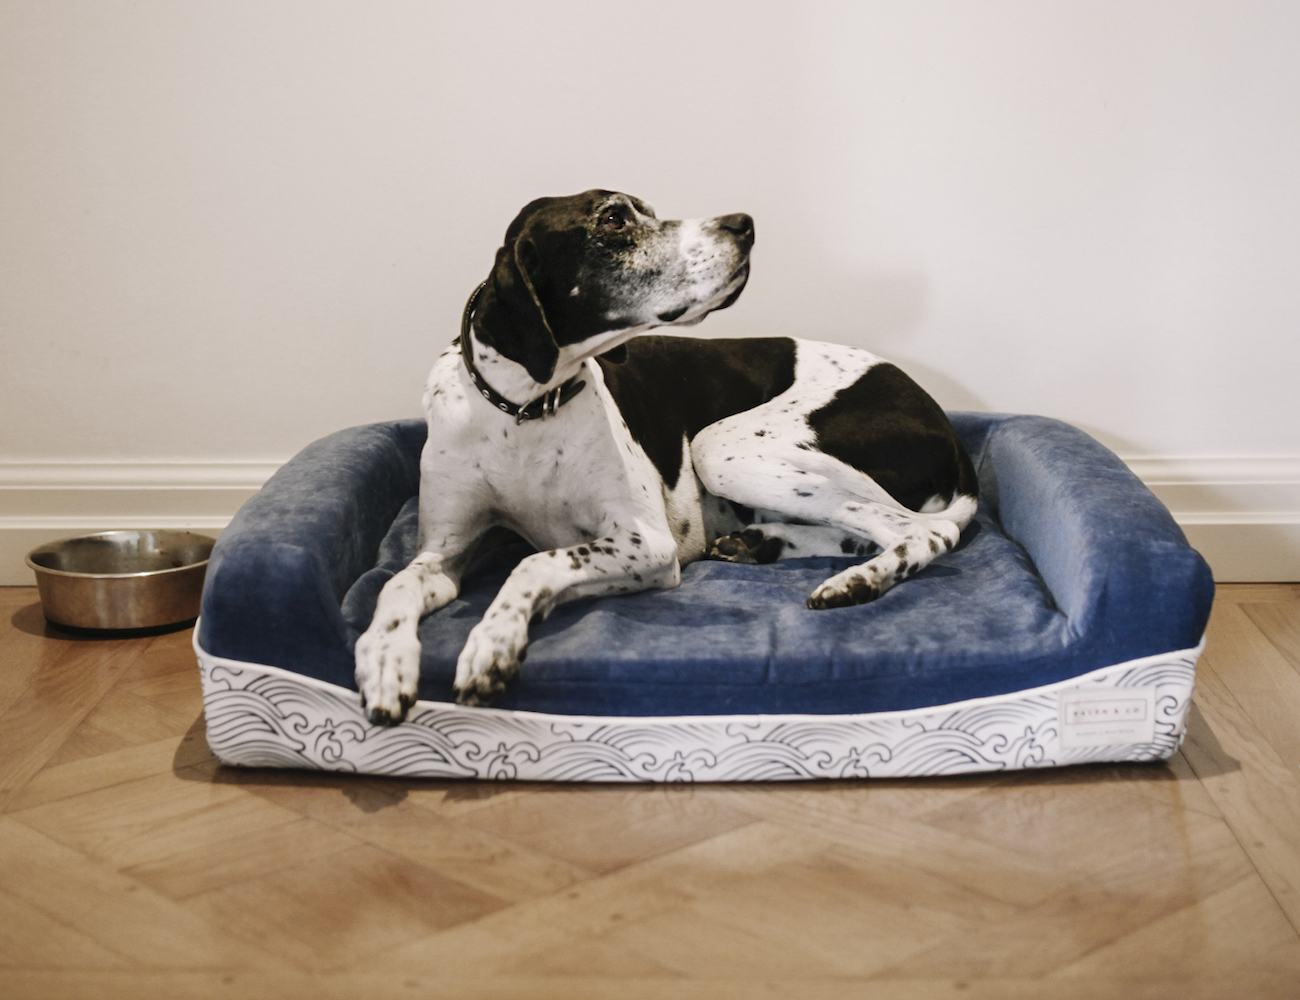 Best Bed In The World The World 39s Best Dog Bed By Ralph And Co Gadget Flow